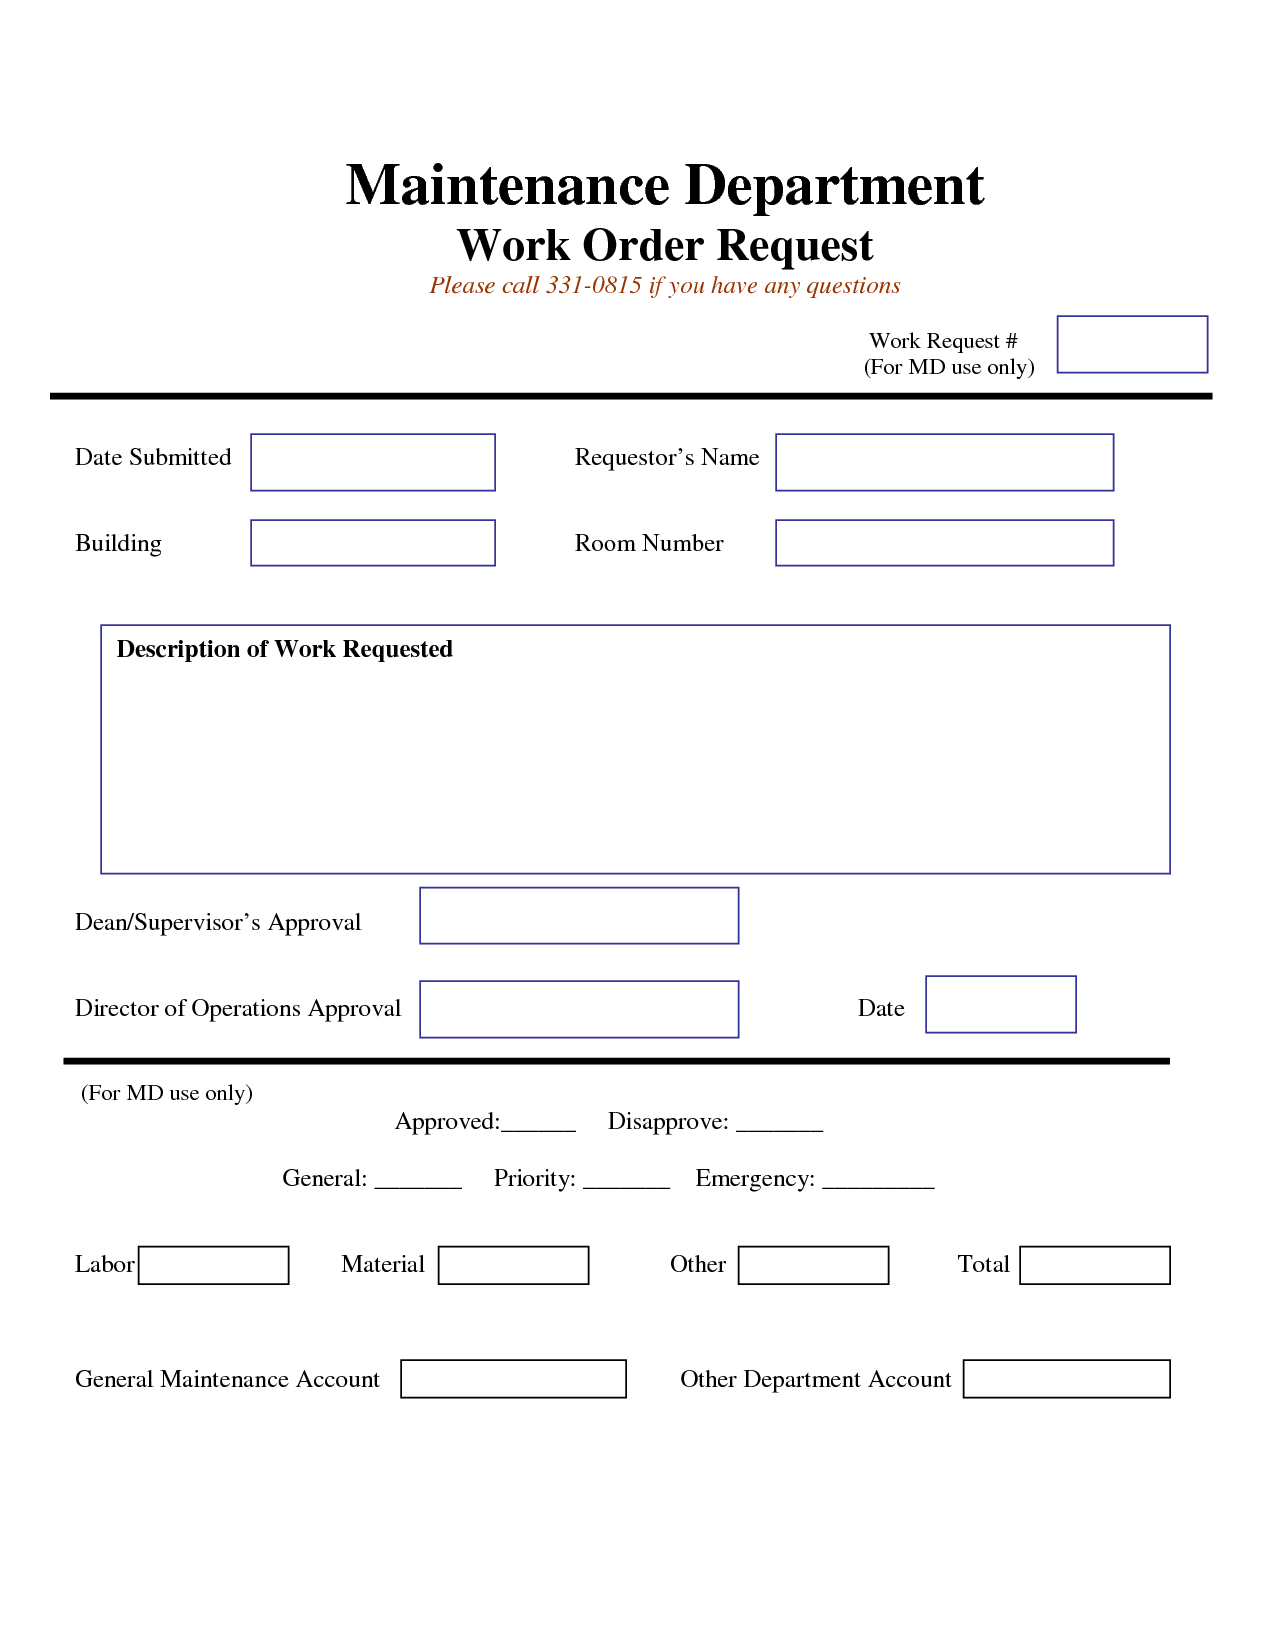 work request form | Maintenance Work Order Request Form | work ...